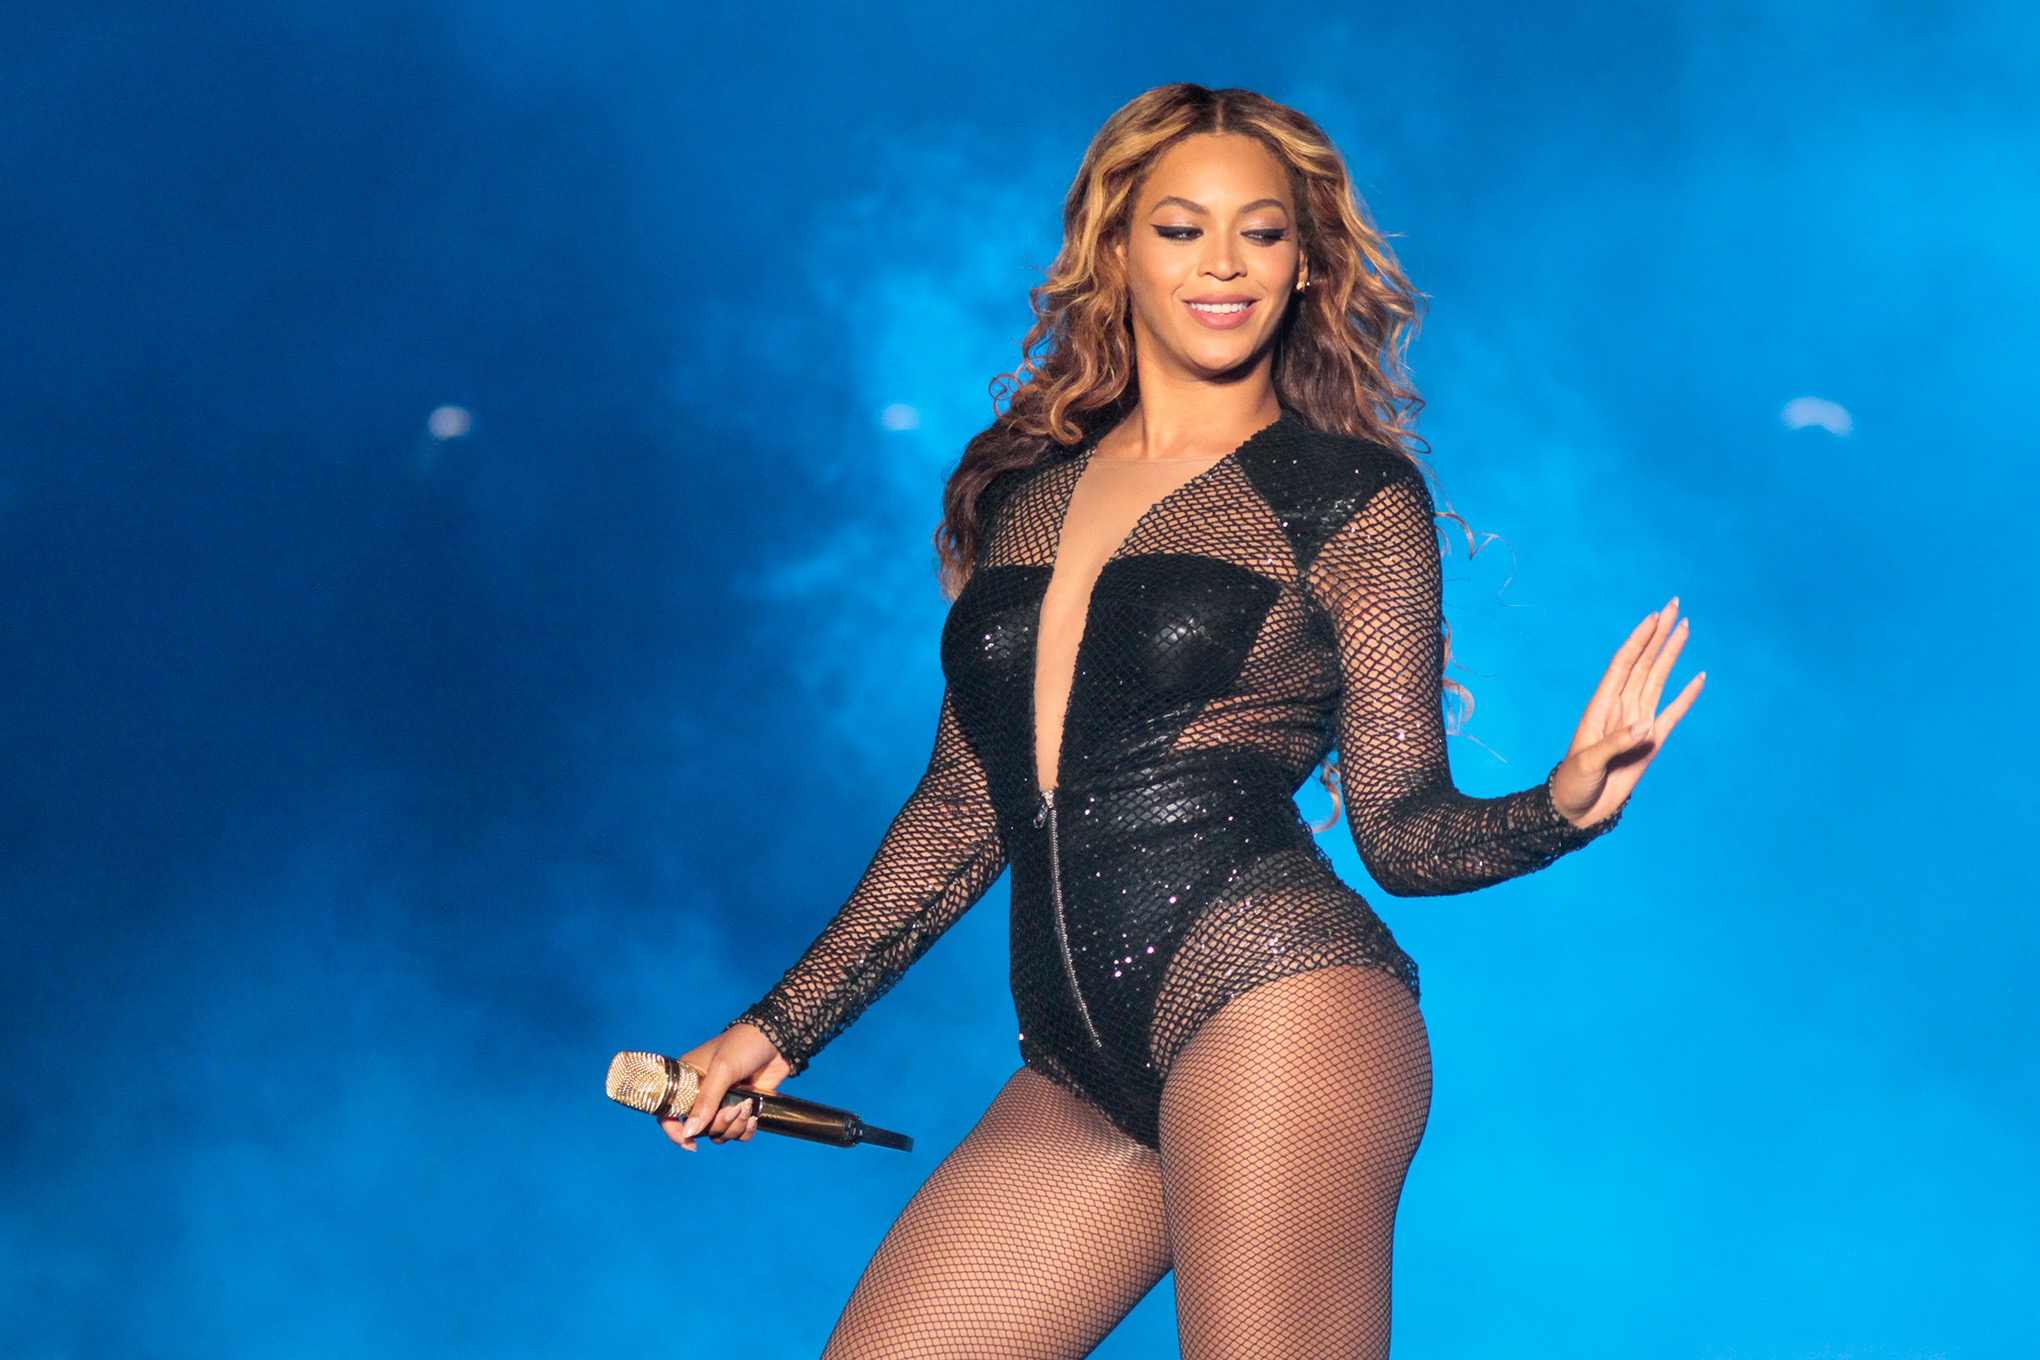 Beyonce Changes Her Email Every Week, According to Ed Sheeran